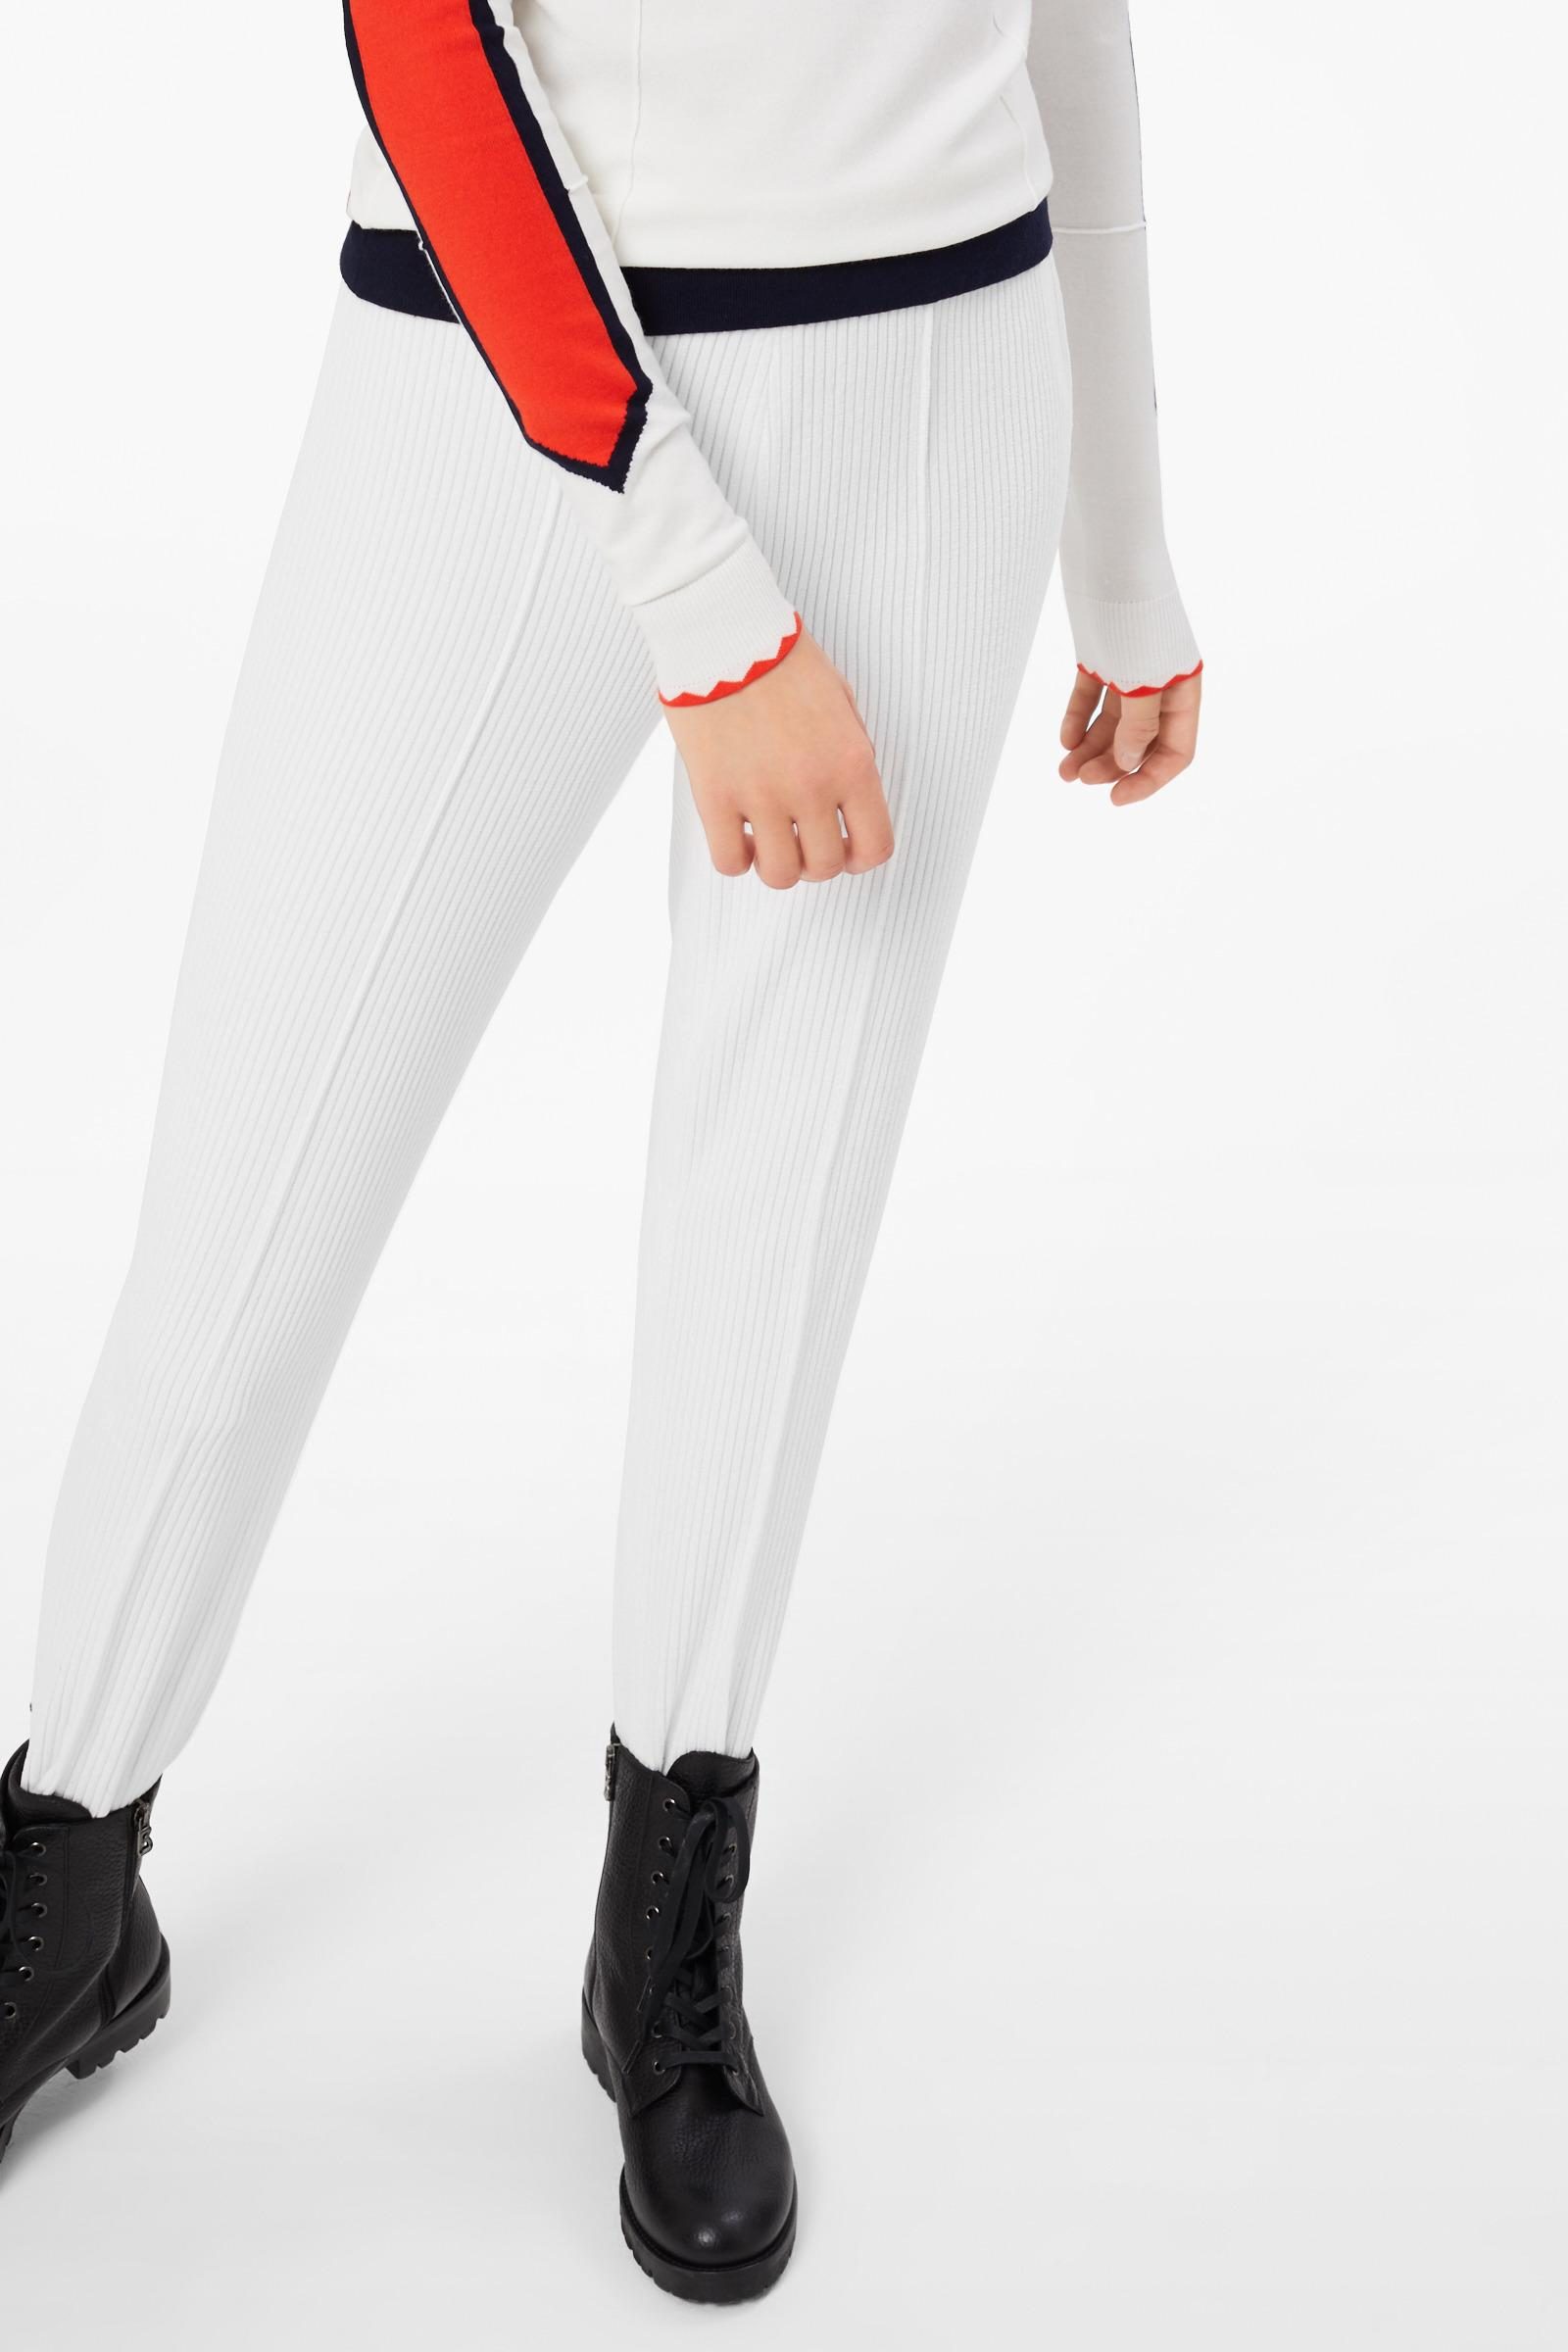 8284facfb961d1 Bogner Elaine Corduroy Stirrup Pants In Off White in White - Lyst